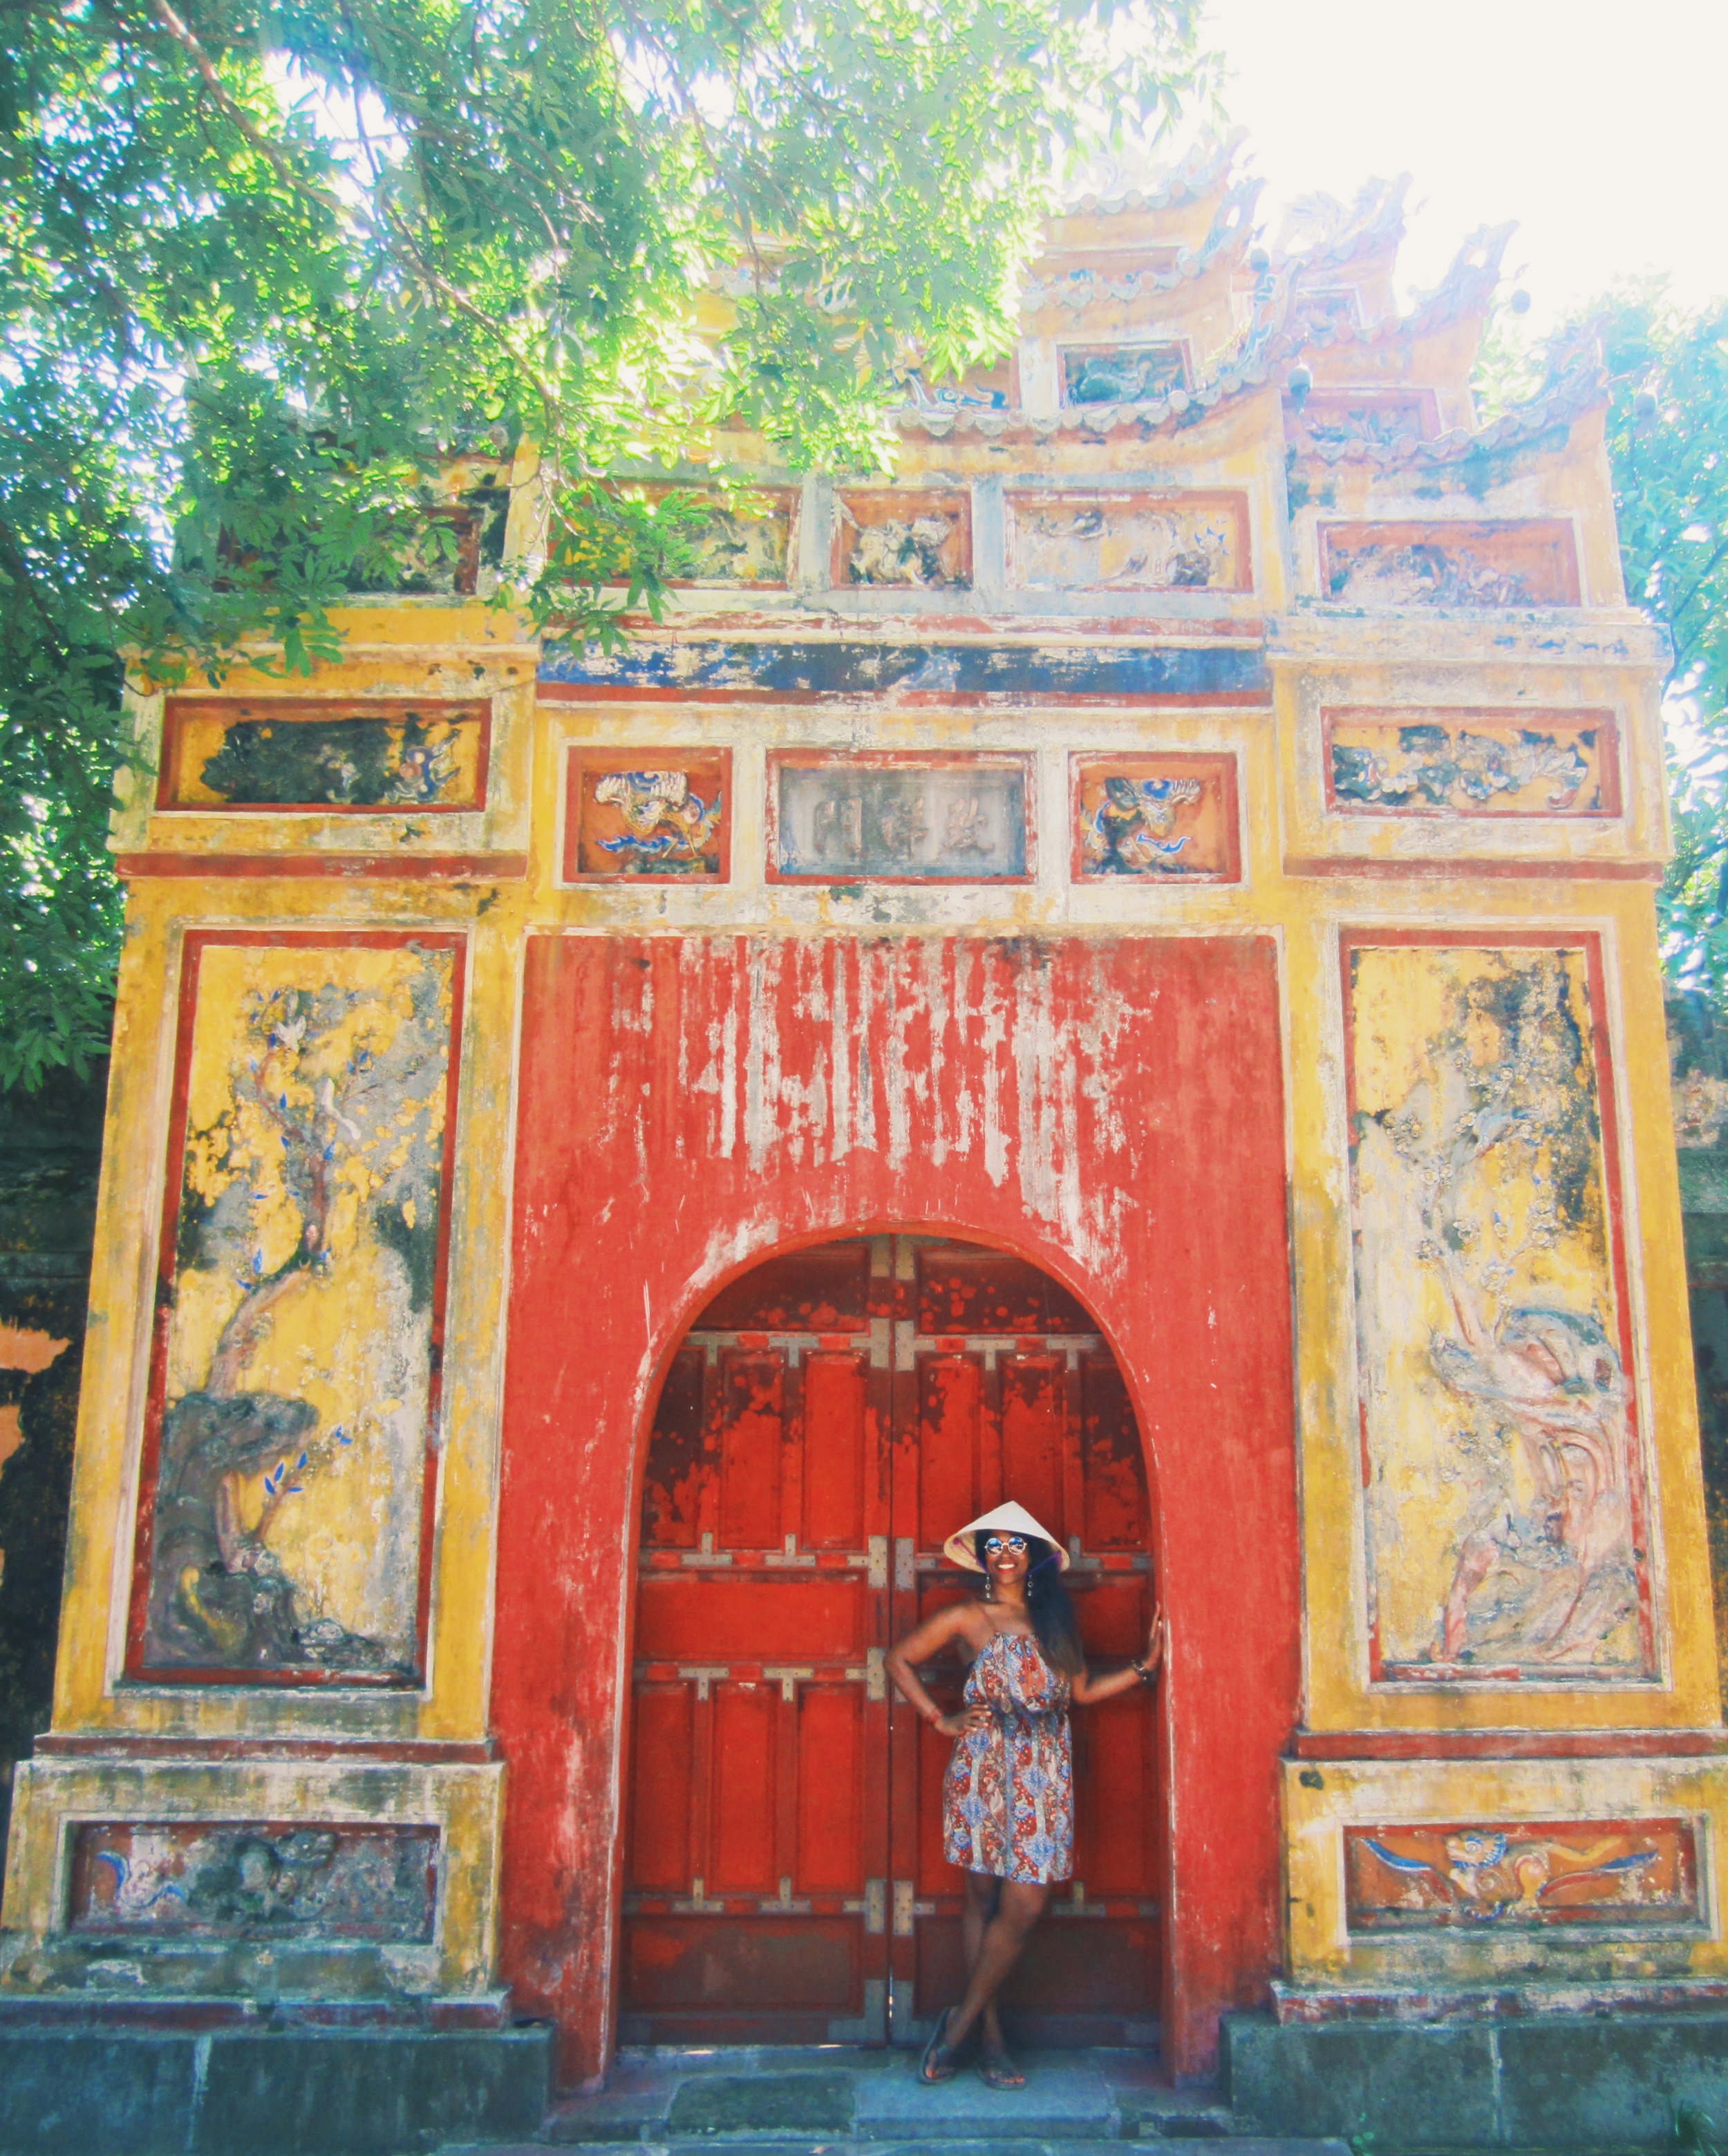 Glo in front of a traditionally decorated door in Hue, Vietnam